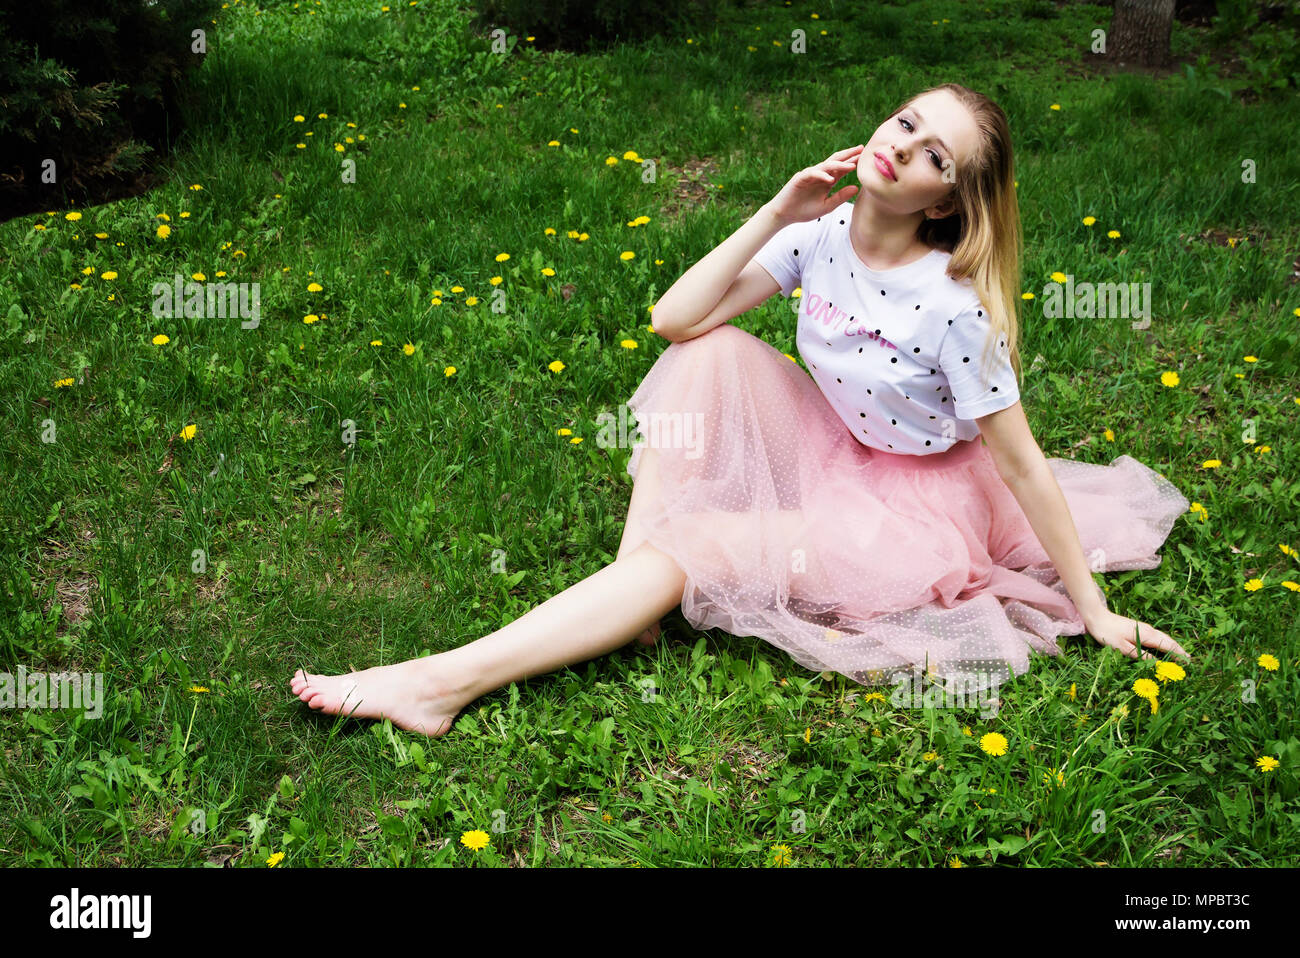 9e2ca9f63db Beautiful barefoot blonde girl with long hair resting on the green grass. -  Stock Image